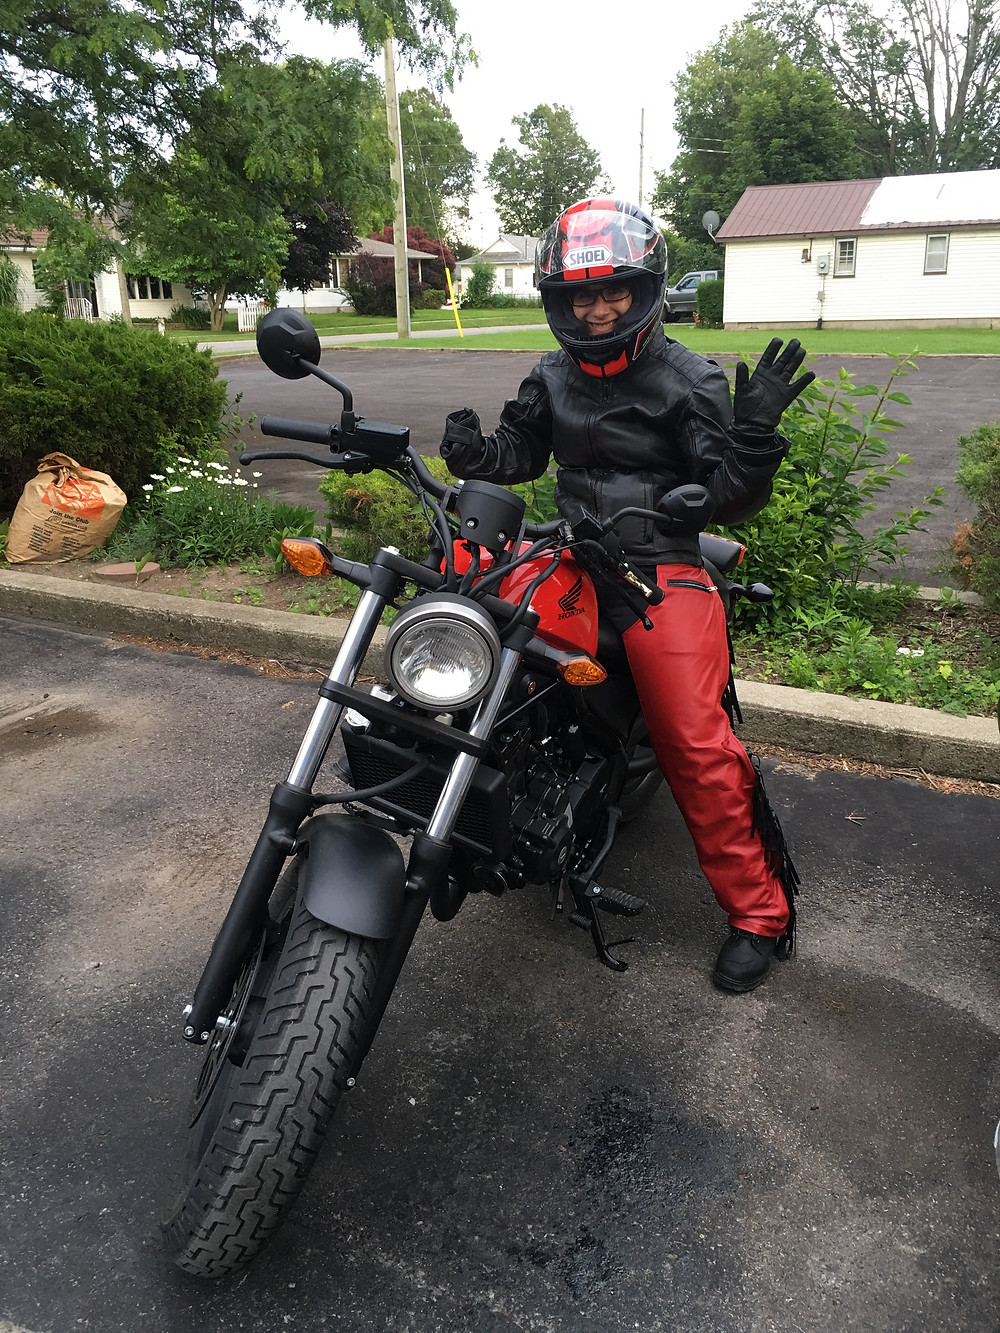 Angie's first motorcycle - a 2017 Honda Rebel 300